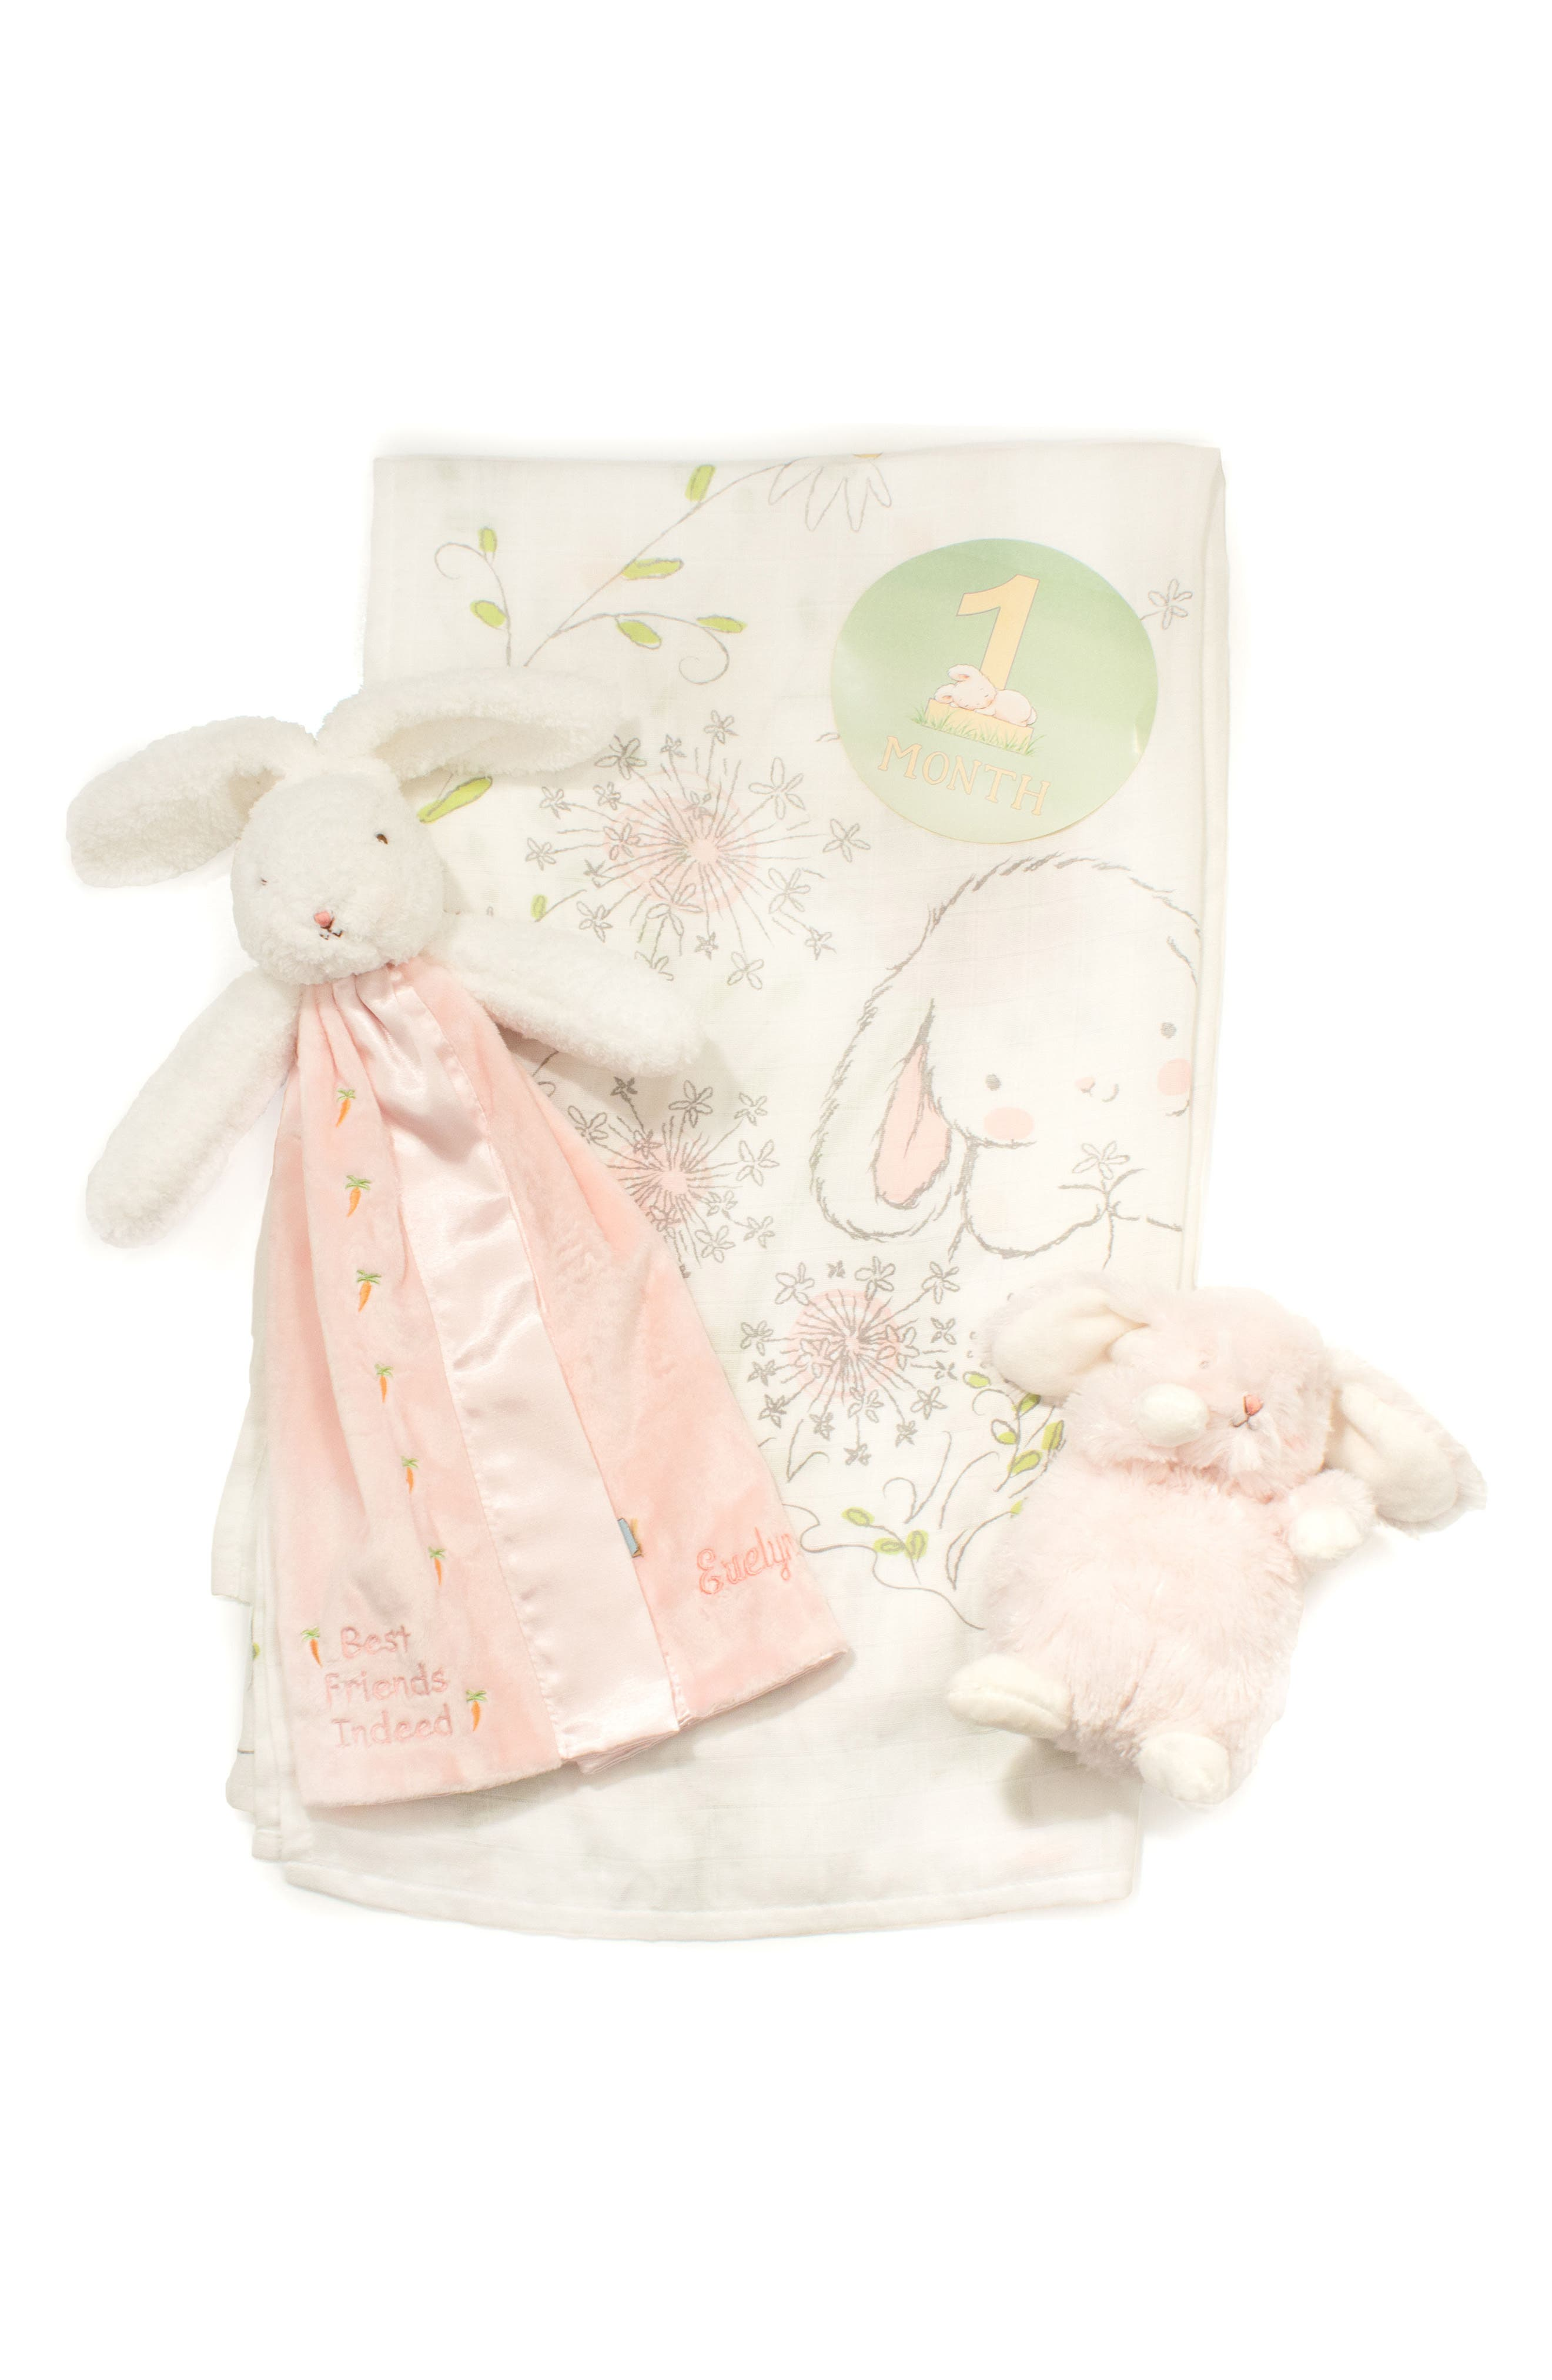 Growing Like a Weed Milestone Stickers, Swaddle Blanket, Lovie & Stuffed Animal Set,                         Main,                         color, Sweet And Tender White